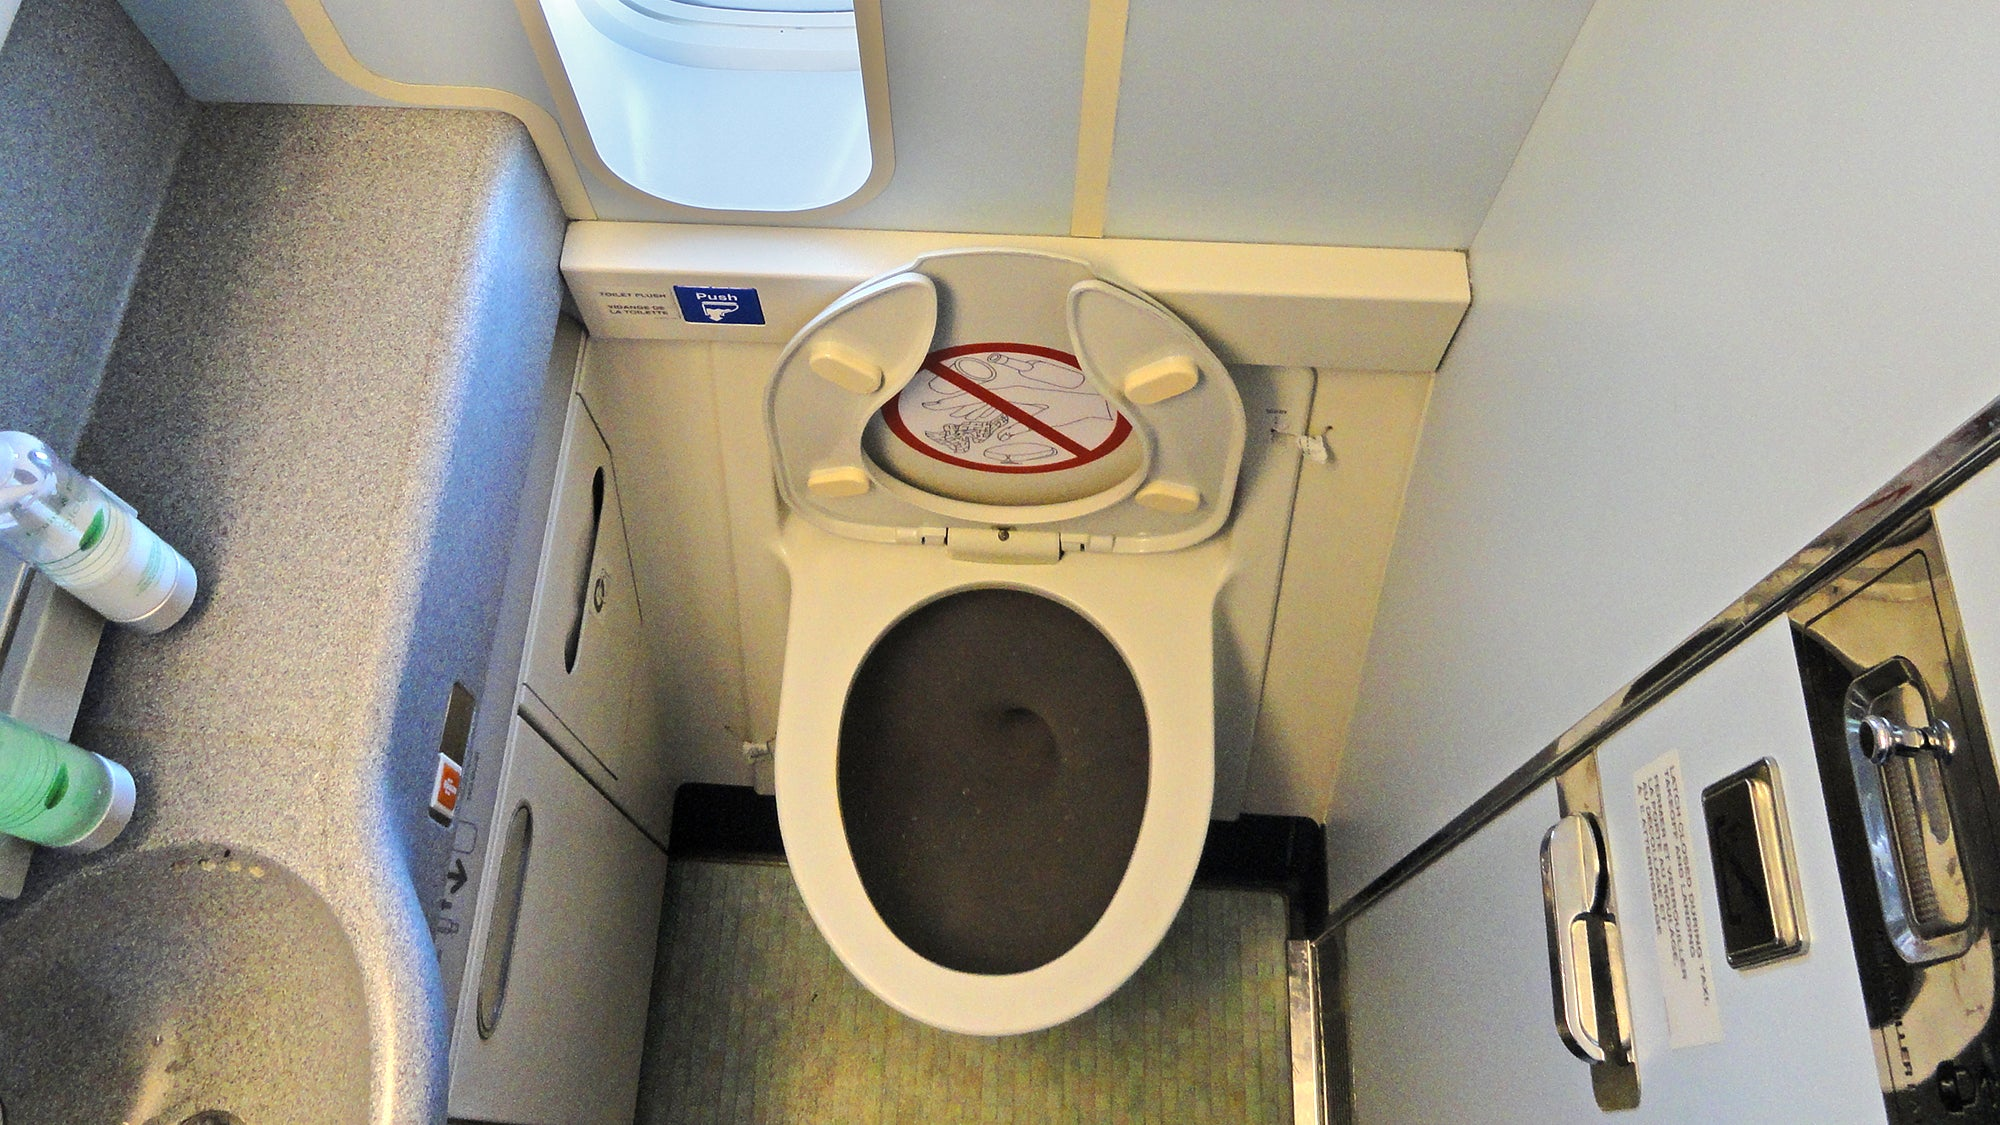 A New Design Promises To Quiet The Terrifying Roar Of Flushing An Aeroplane Toilet